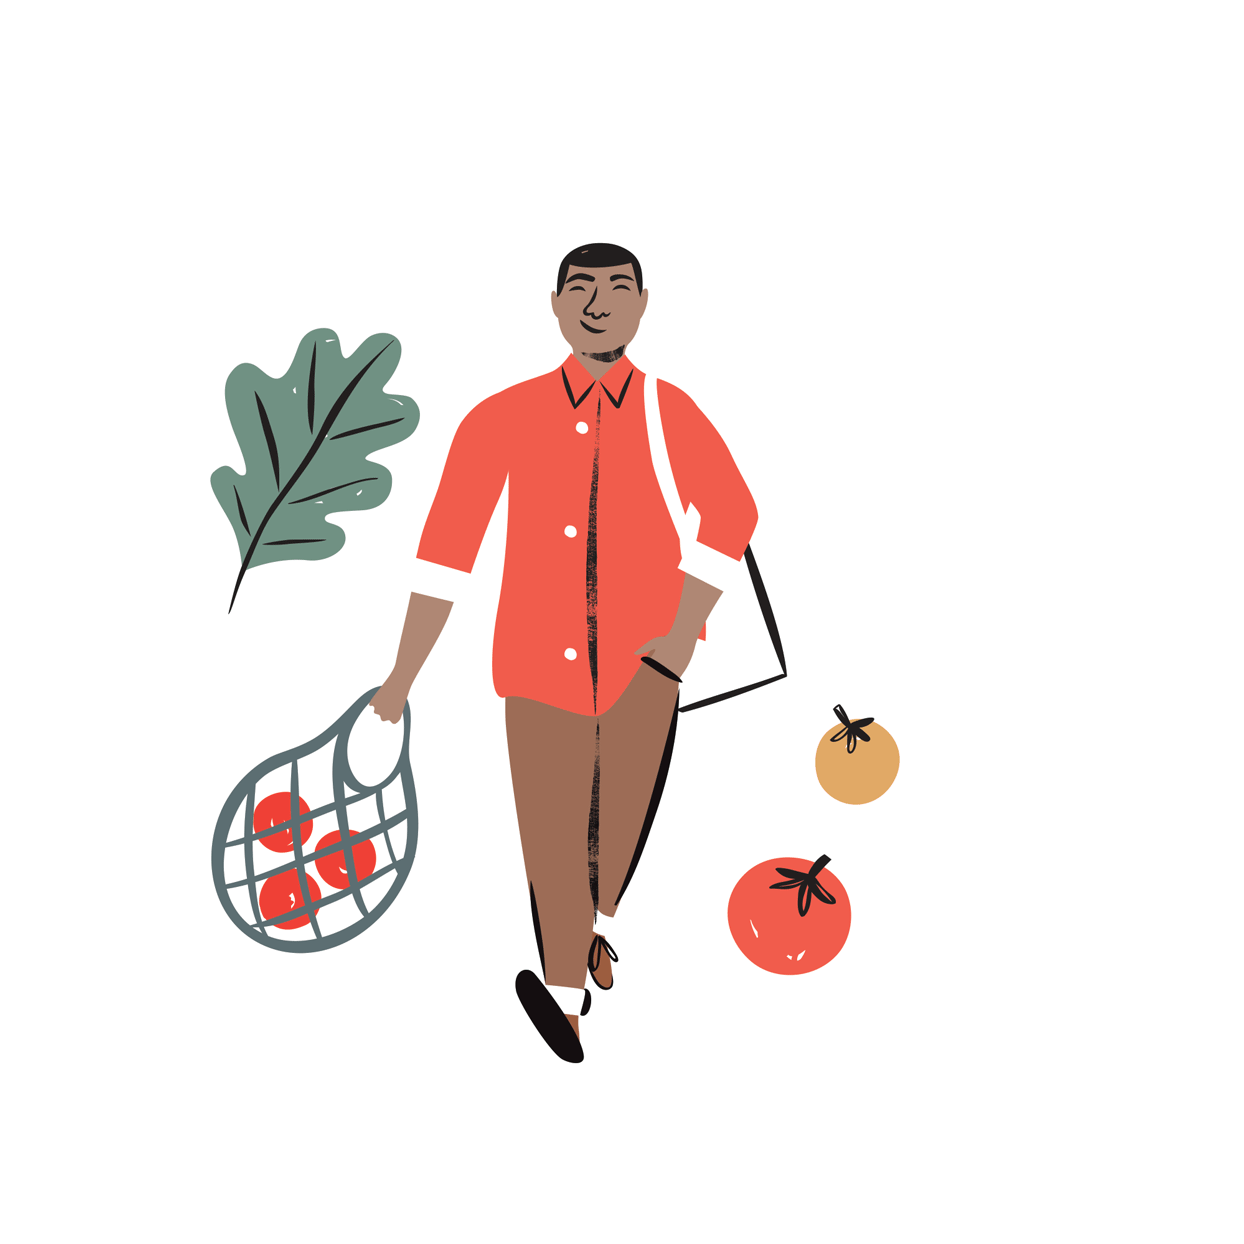 illustration of a person walking with a bag of vegetables